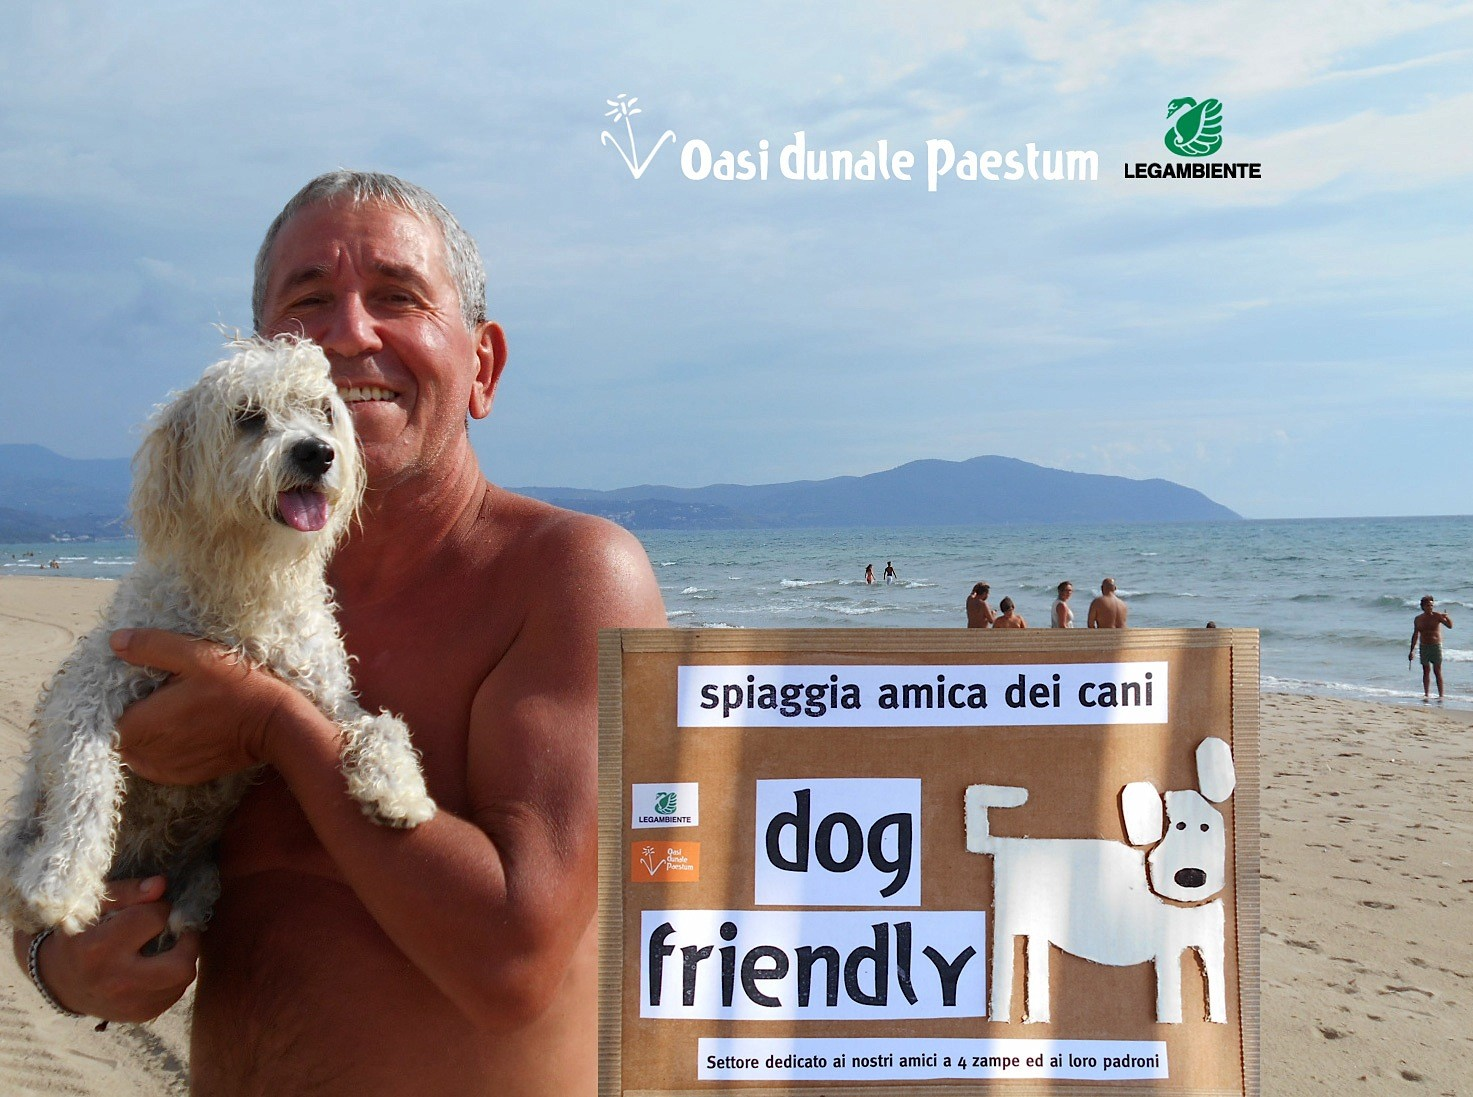 L'Oasi Dunale di Paestum è dog friendly